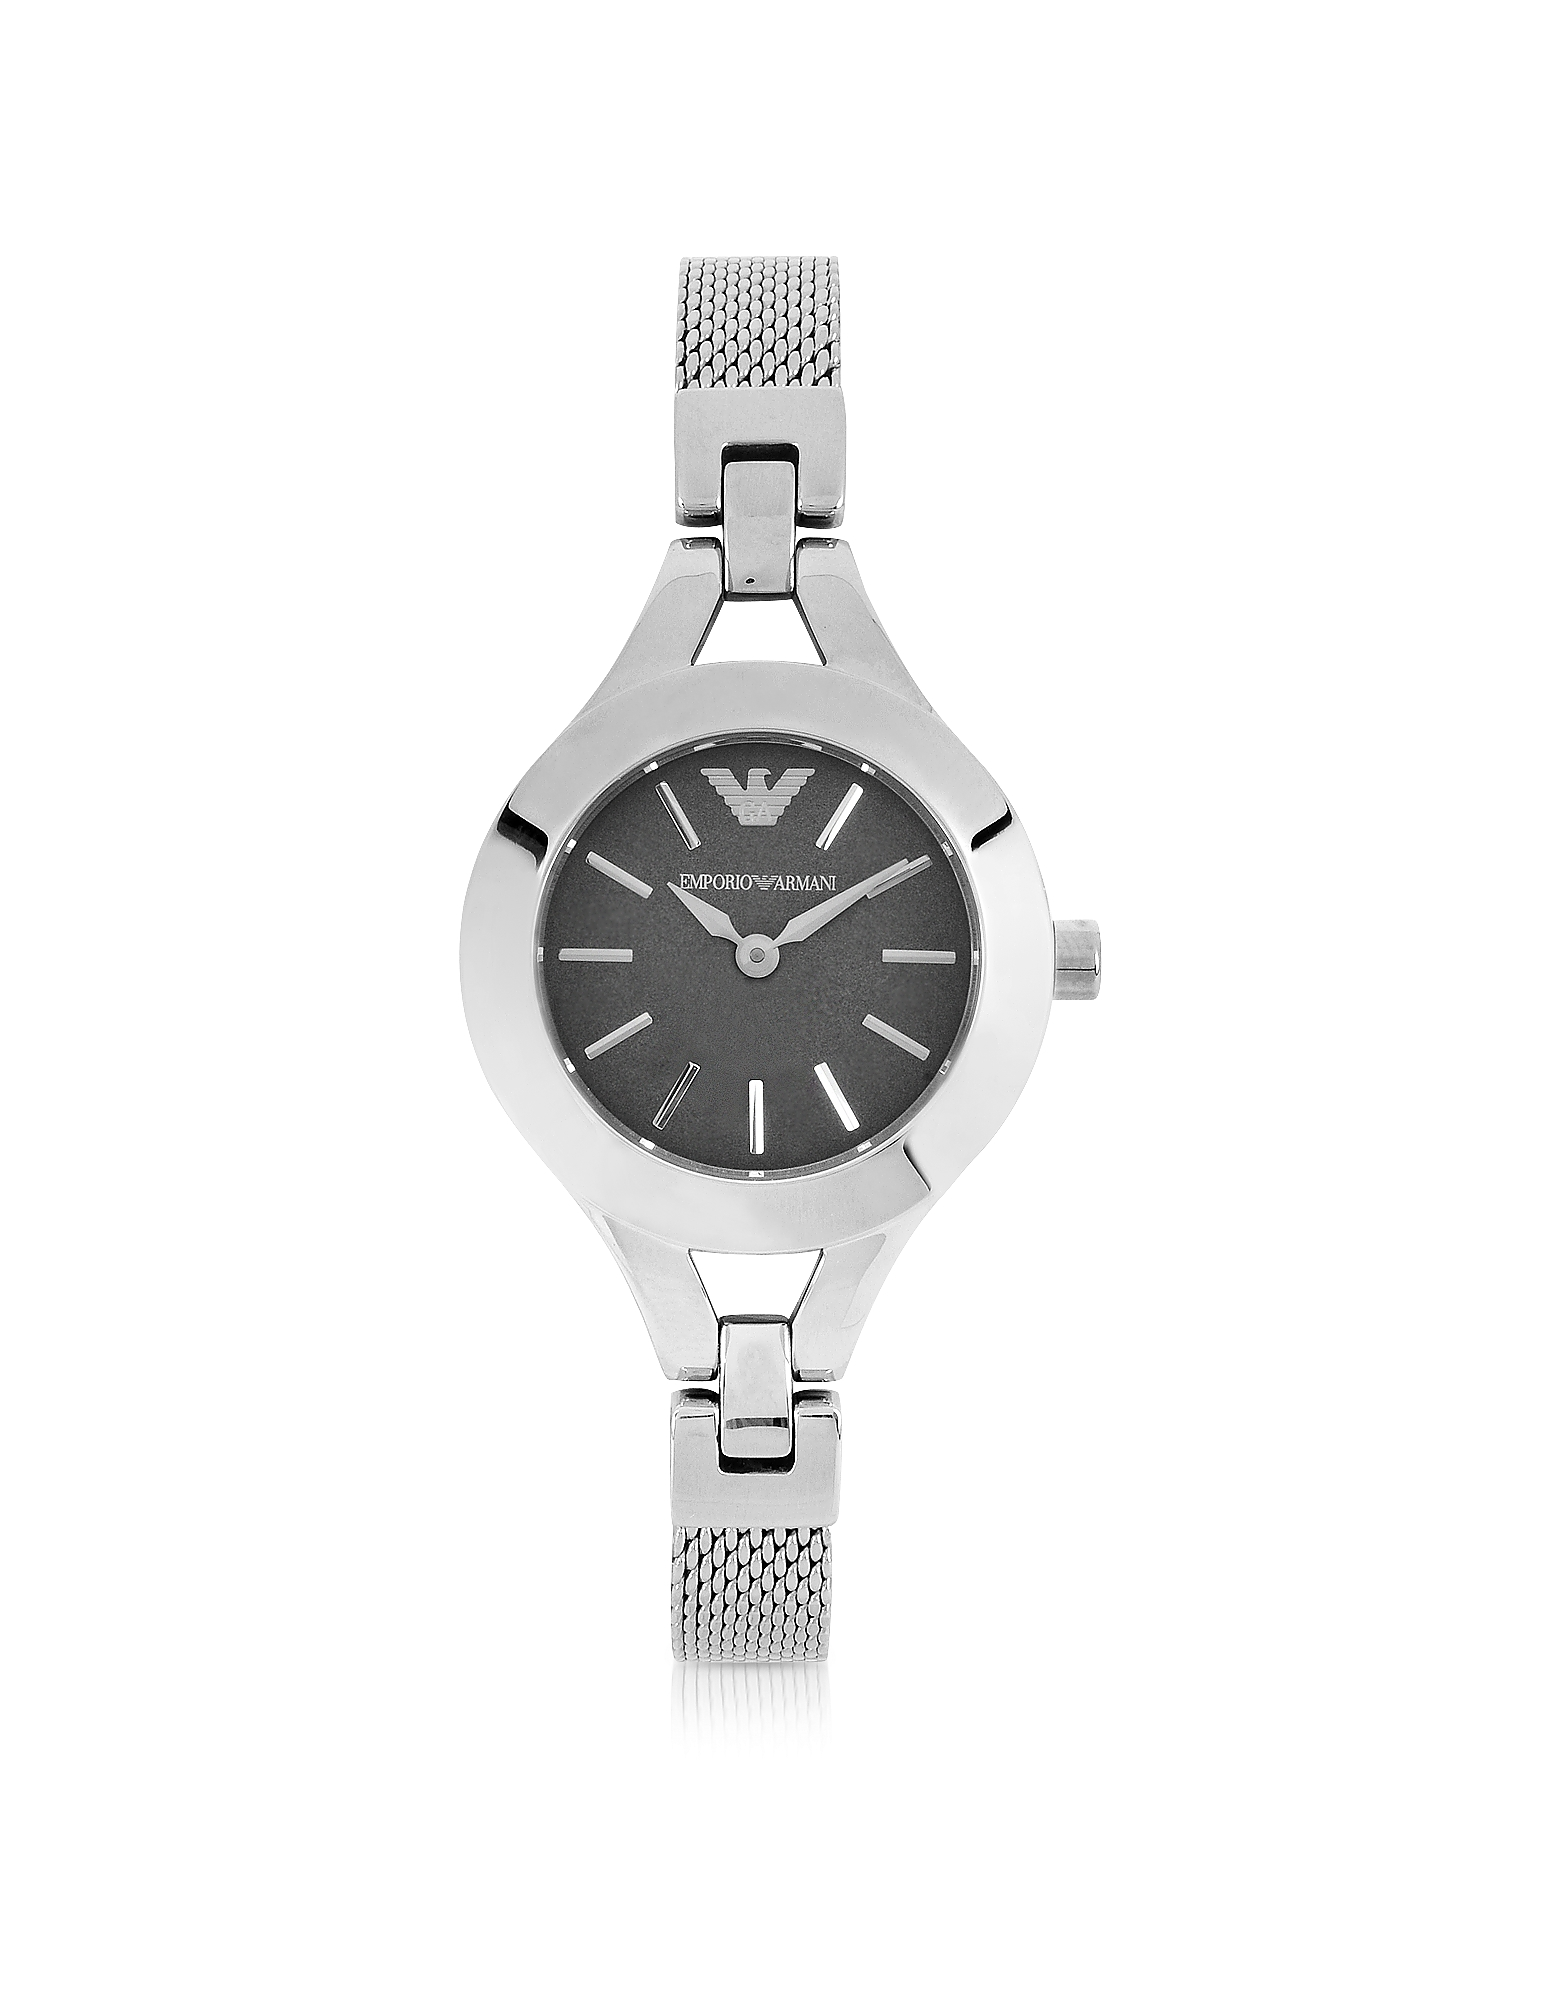 Emporio Armani Women's Watches, Women's Classic Stainless Steel Mesh Bracelet Watch